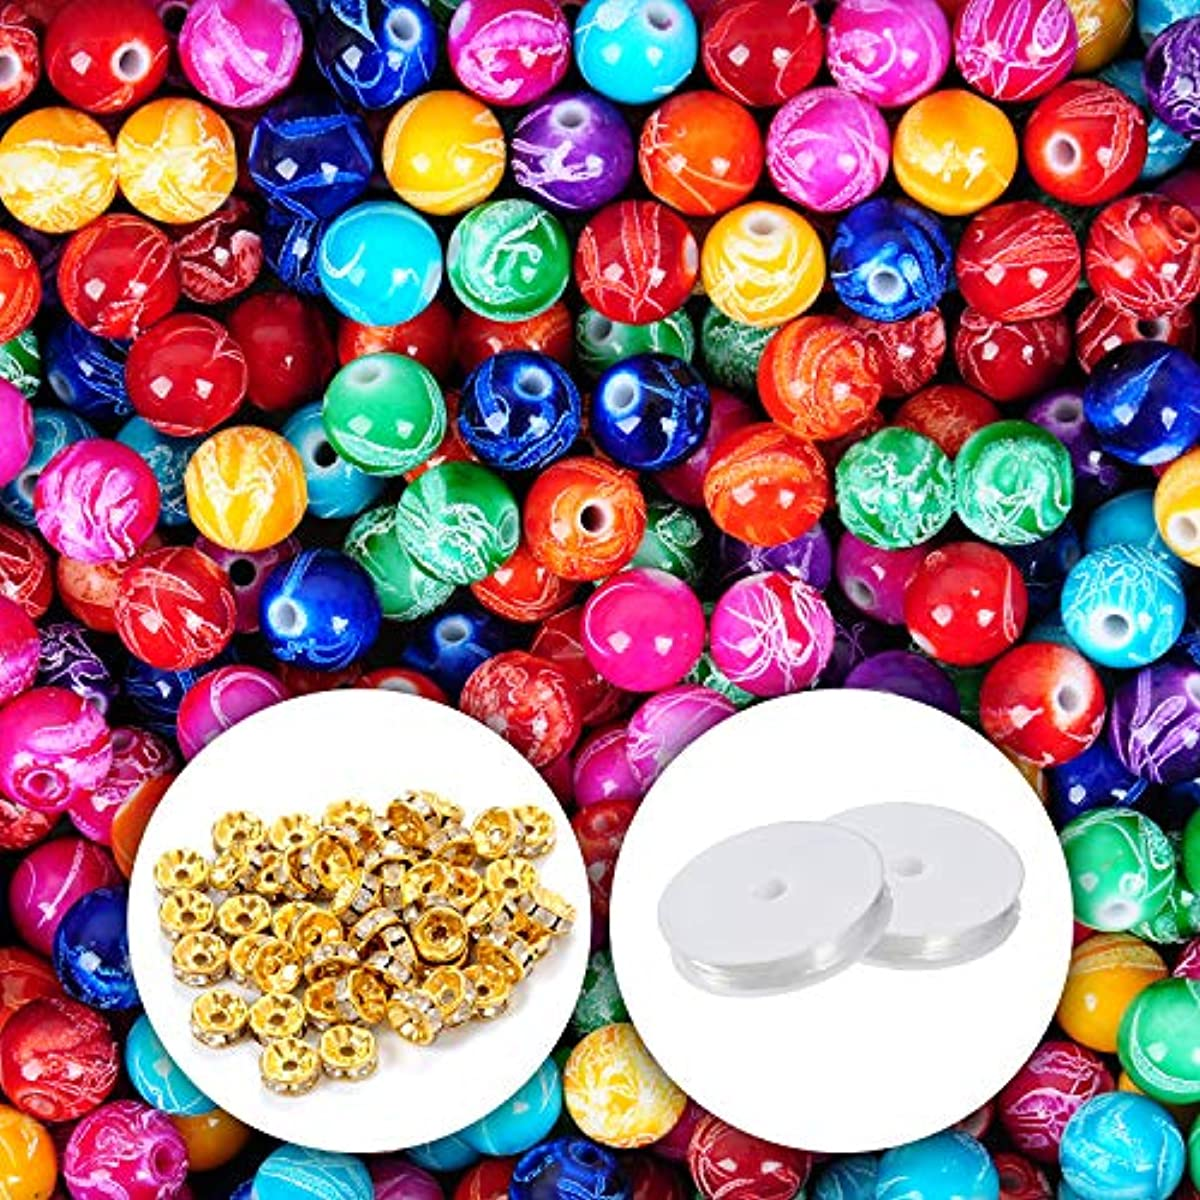 YUEAON 300pcs 10mm Painted Acrylic Beads with 50pcs Crystal Spacer Beads for Bracelet Necklace Jewelry Making Supplies Craft (10MM)